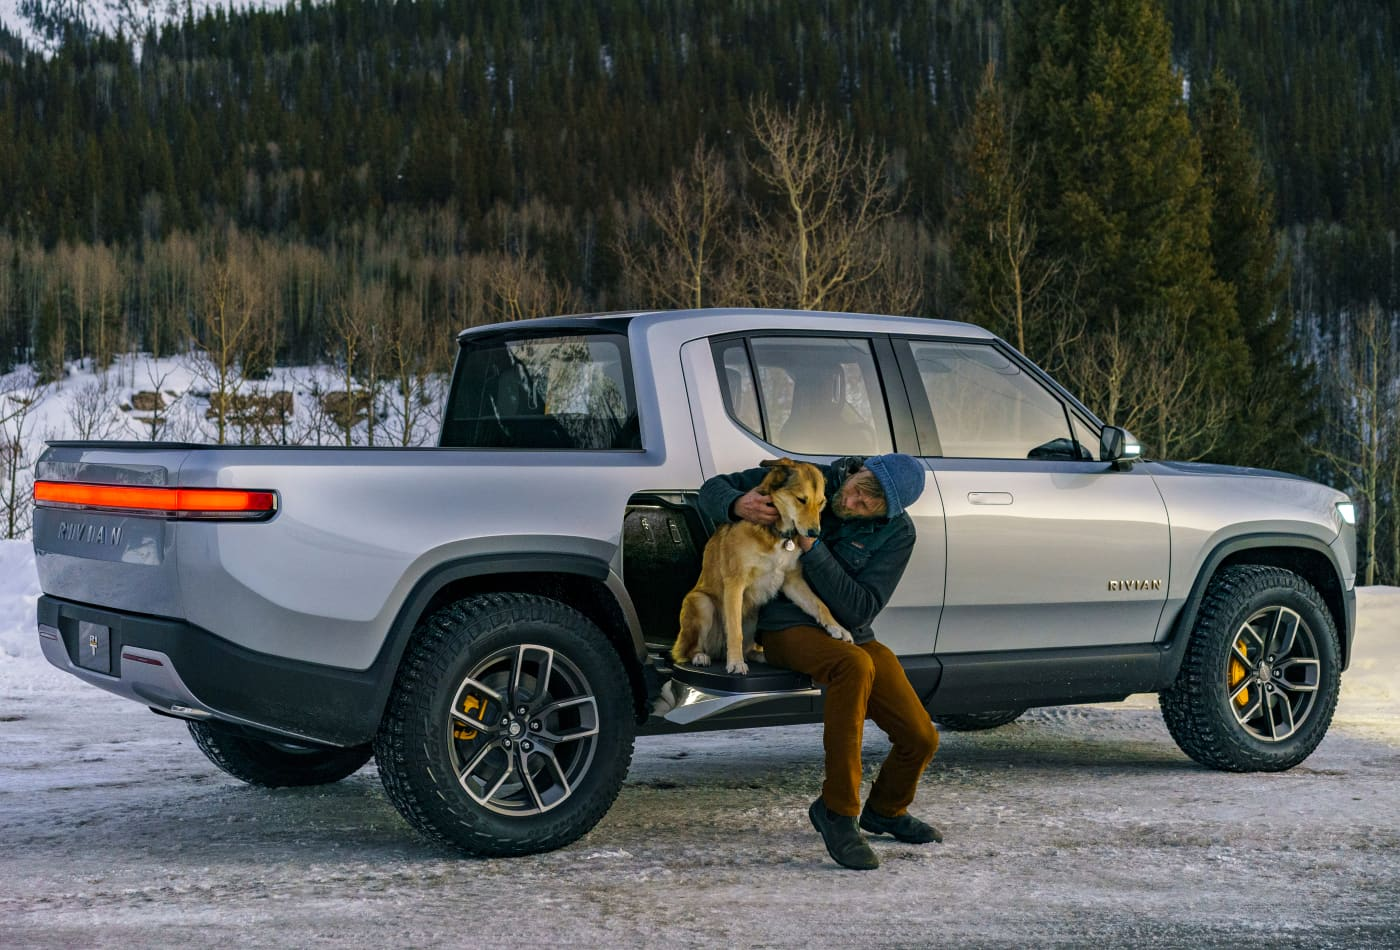 Photos: Rivian's all-electric pickup and SUV coming in 2020